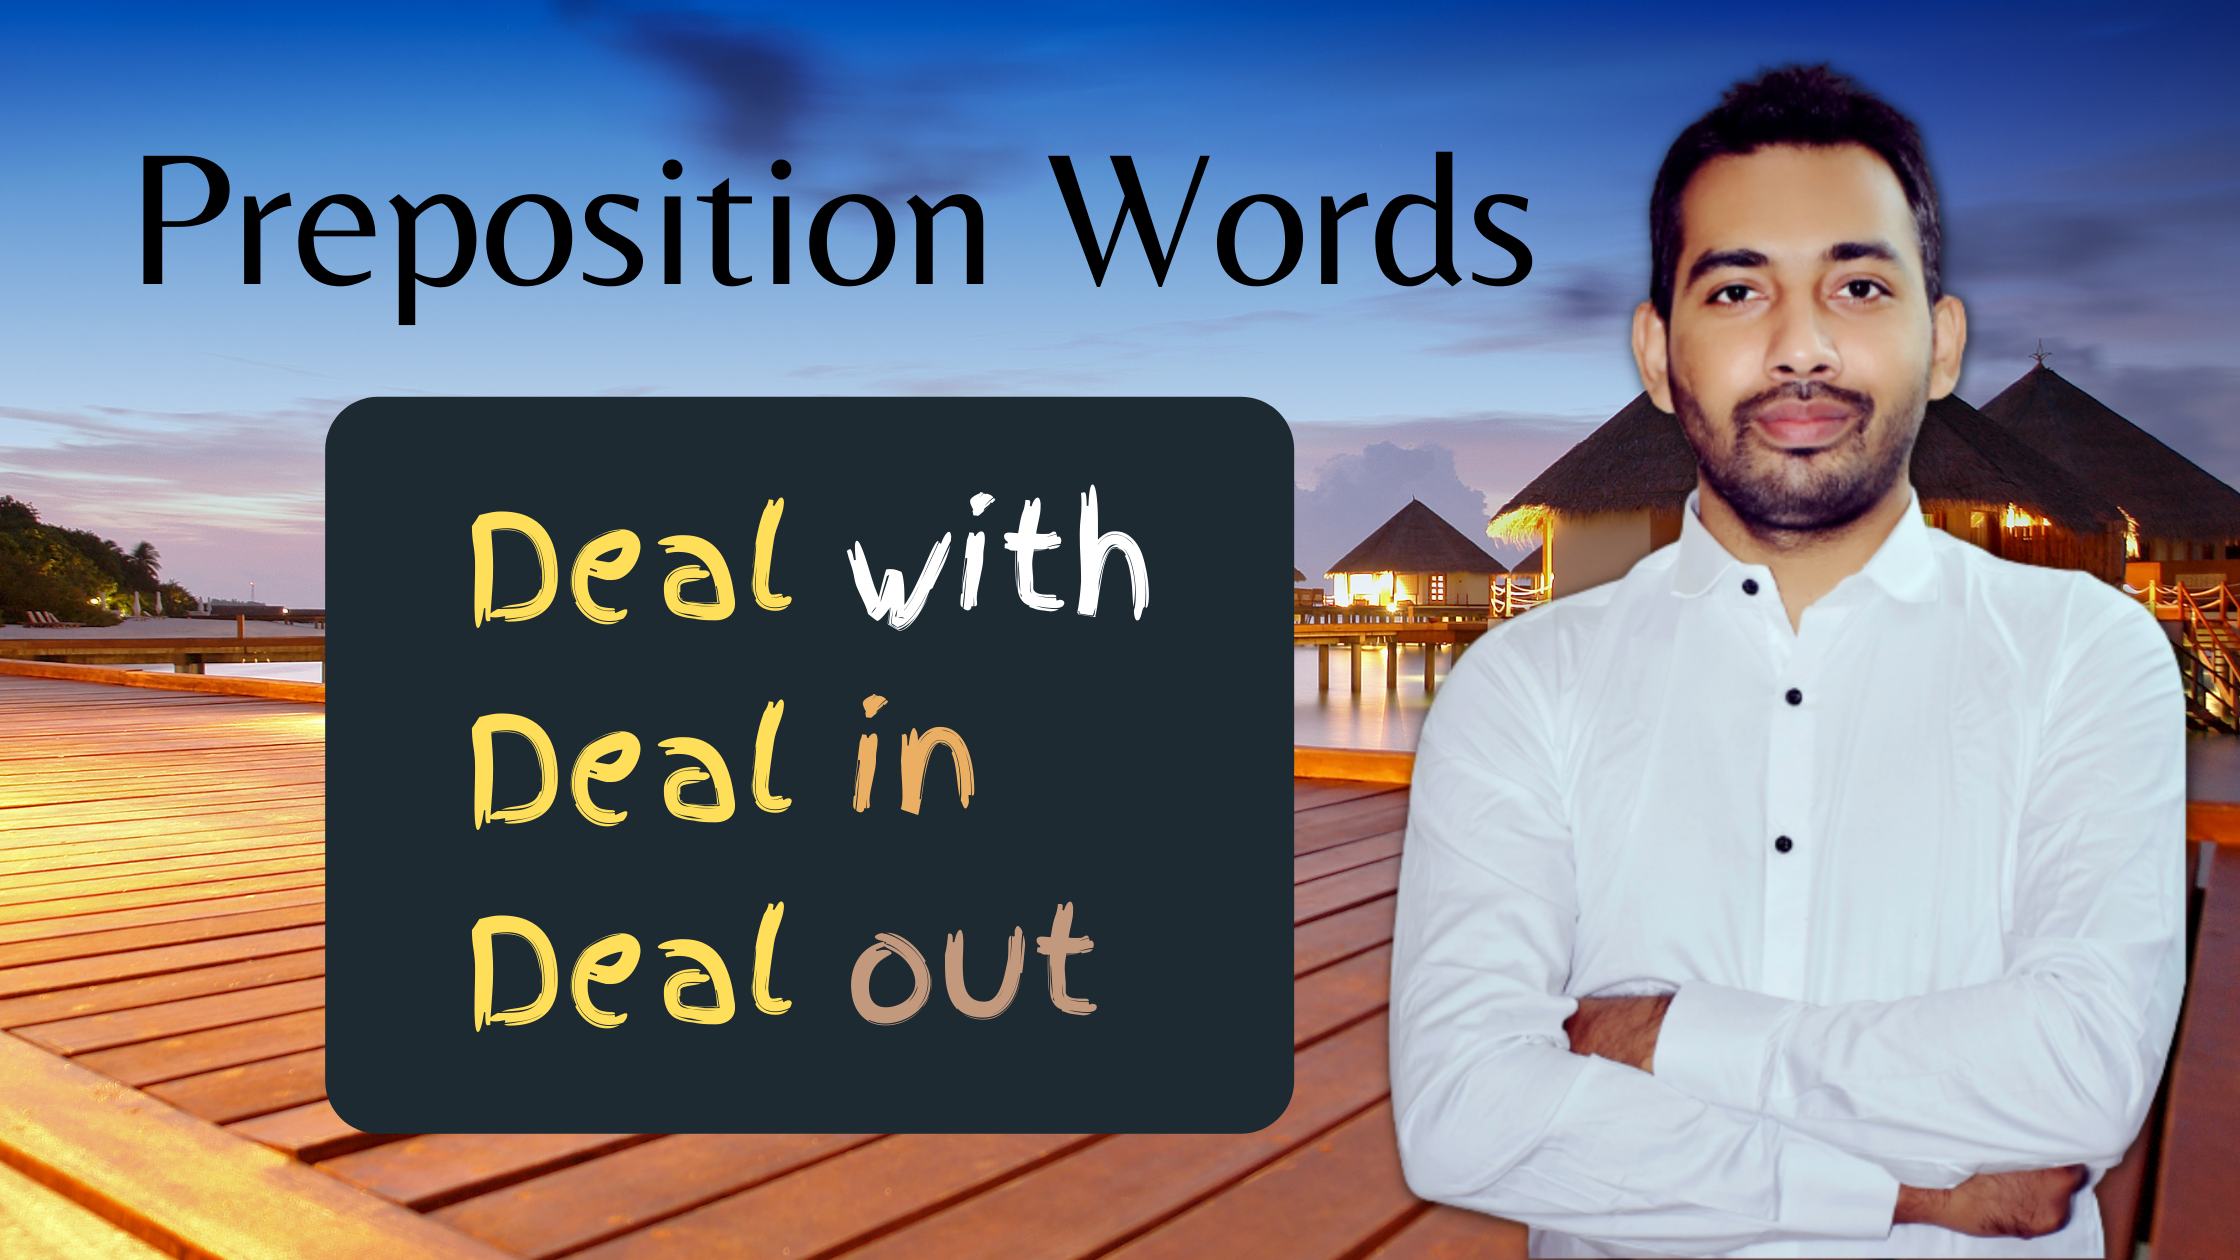 Preposition words with Deal